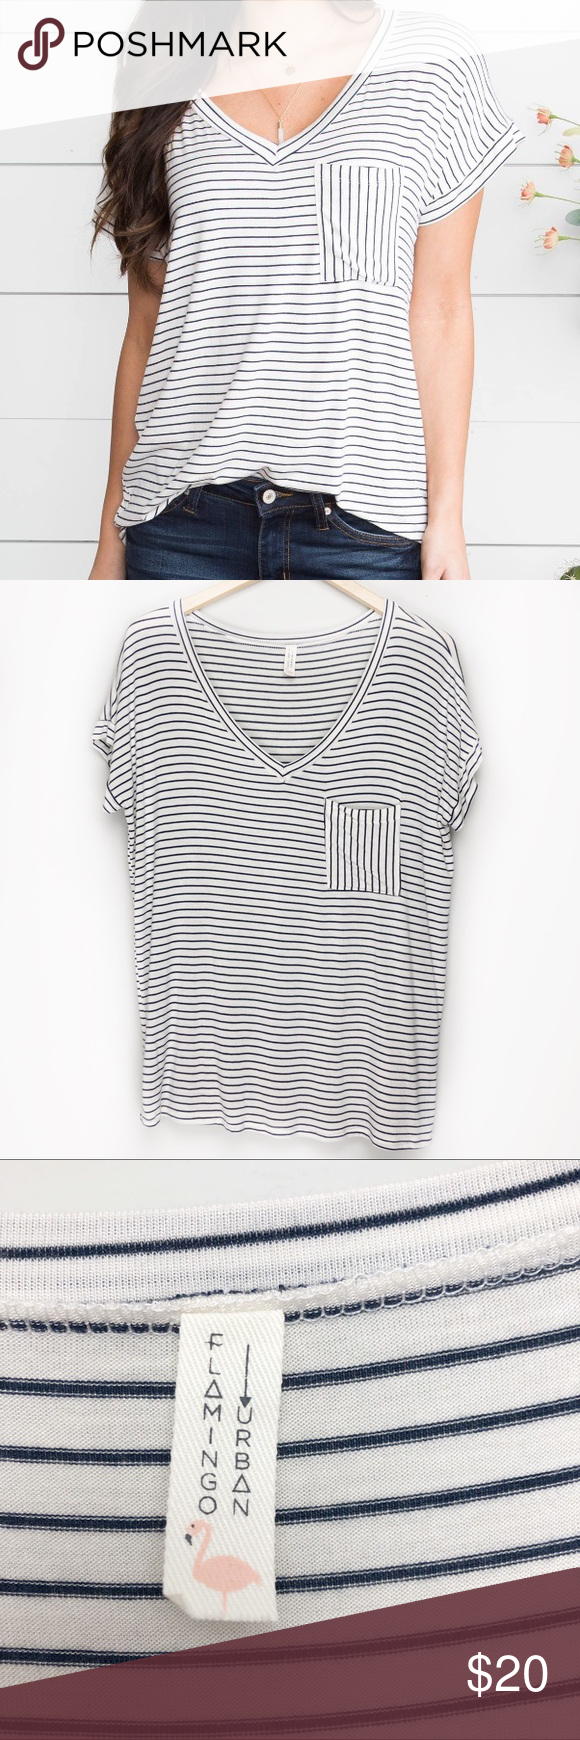 Flaming Urban Navy And Off White Striped Top Slight Oversized Fit Size Small Condition Preowned Excellent Condition No White Stripes Top Striped Top Tops